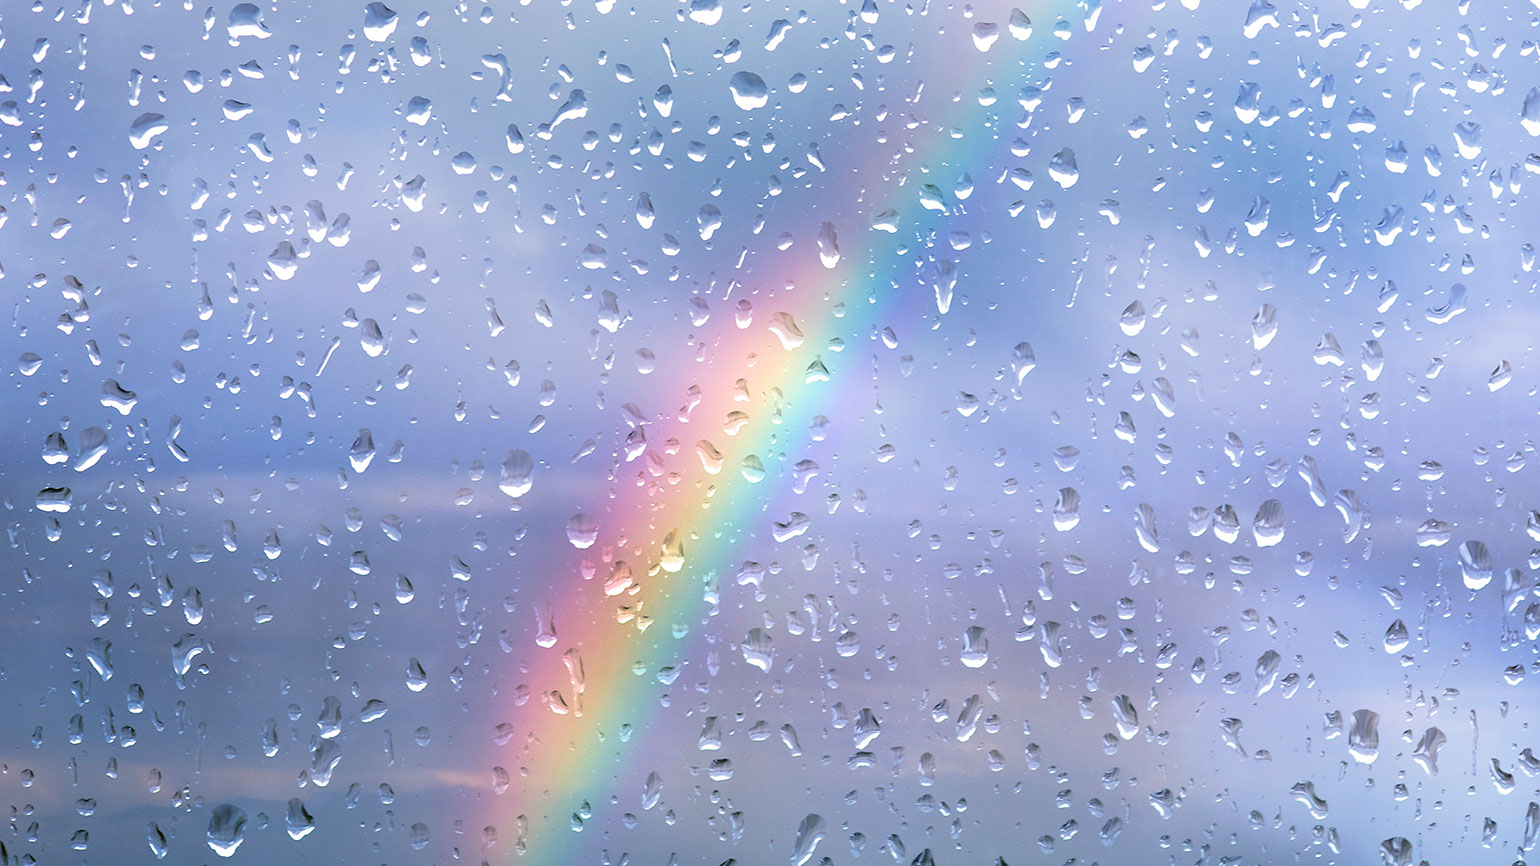 A rainbow is viewed through a window with raindrops beaded up on it